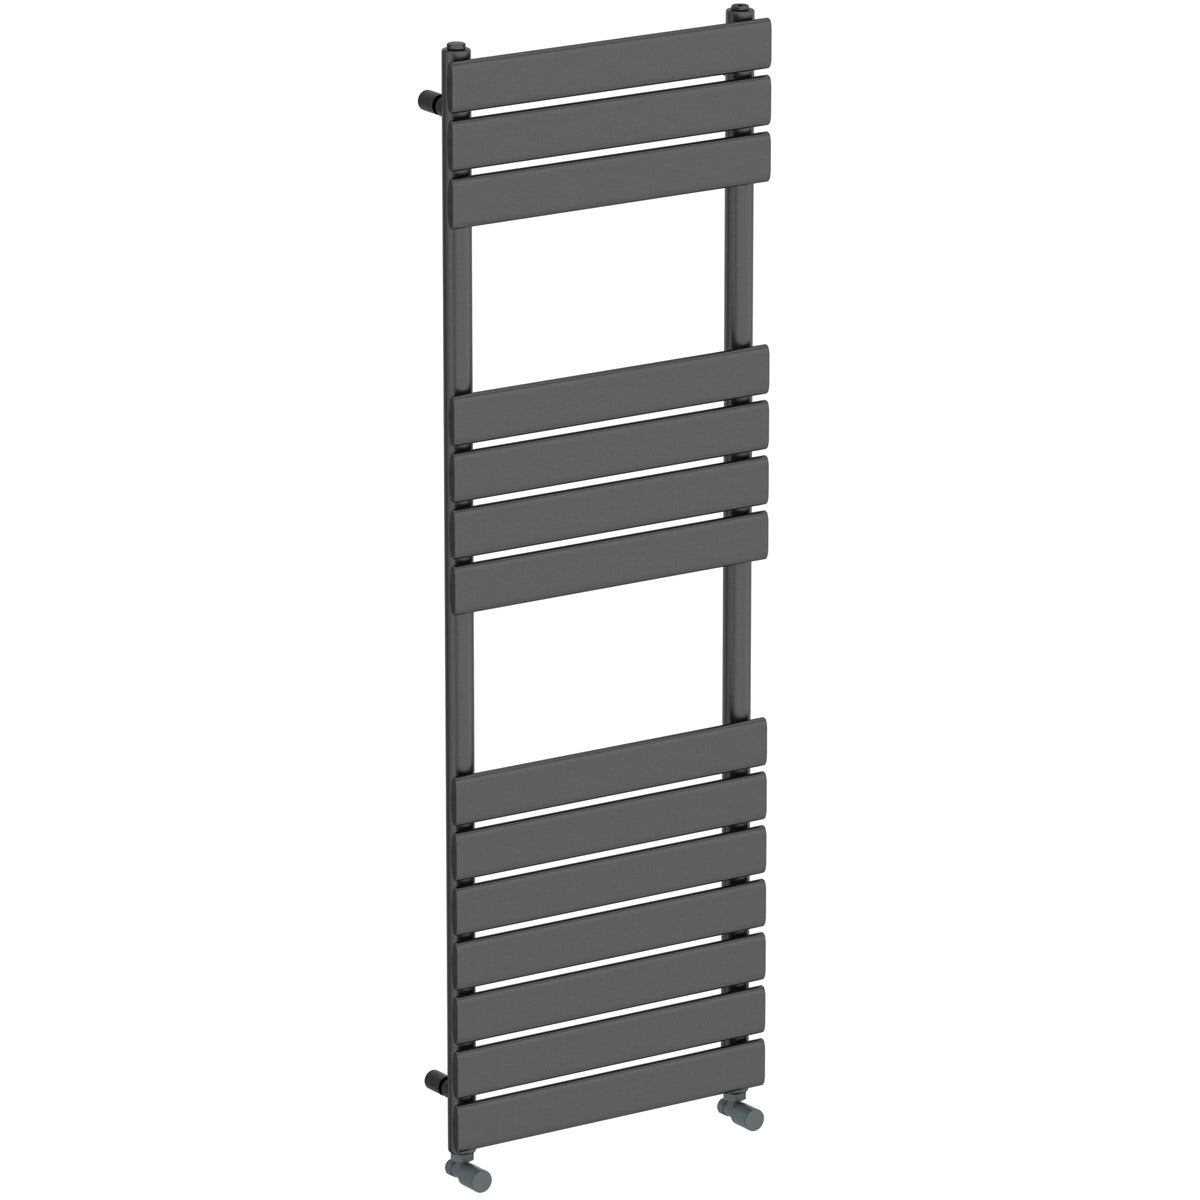 Orchard Wharfe anthracite heated towel rail 1500 x 500